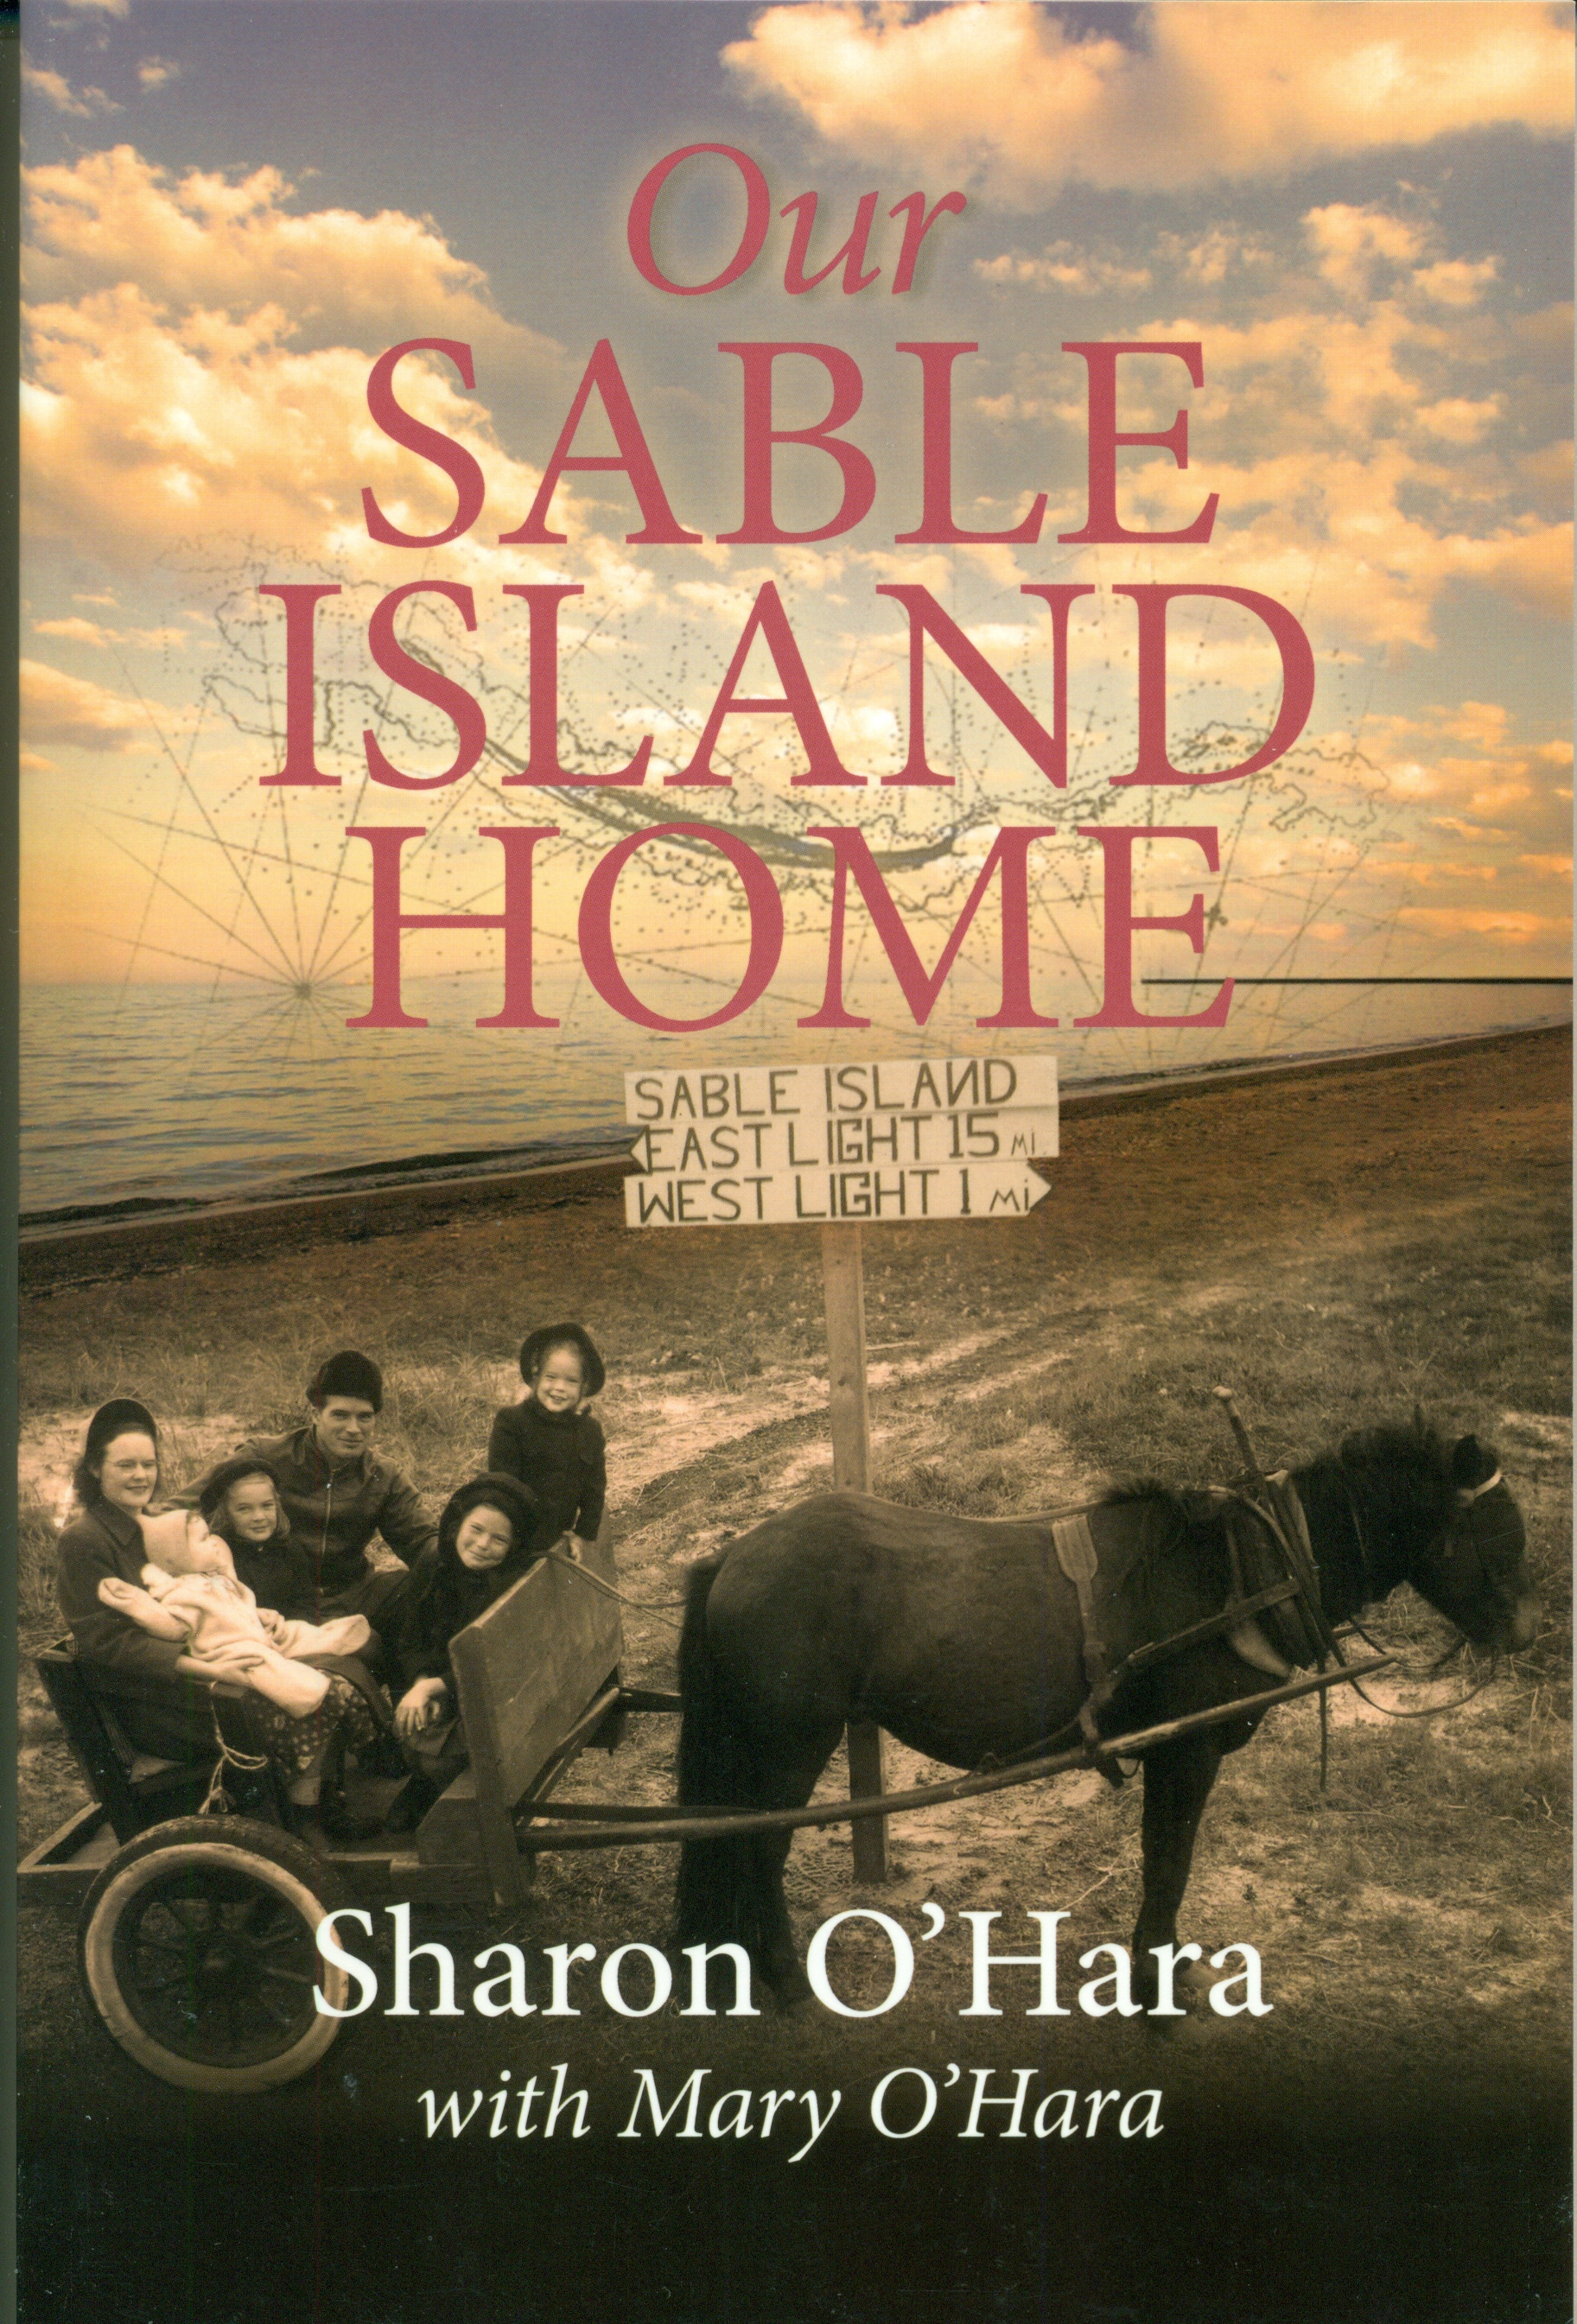 Our Sable Island Home